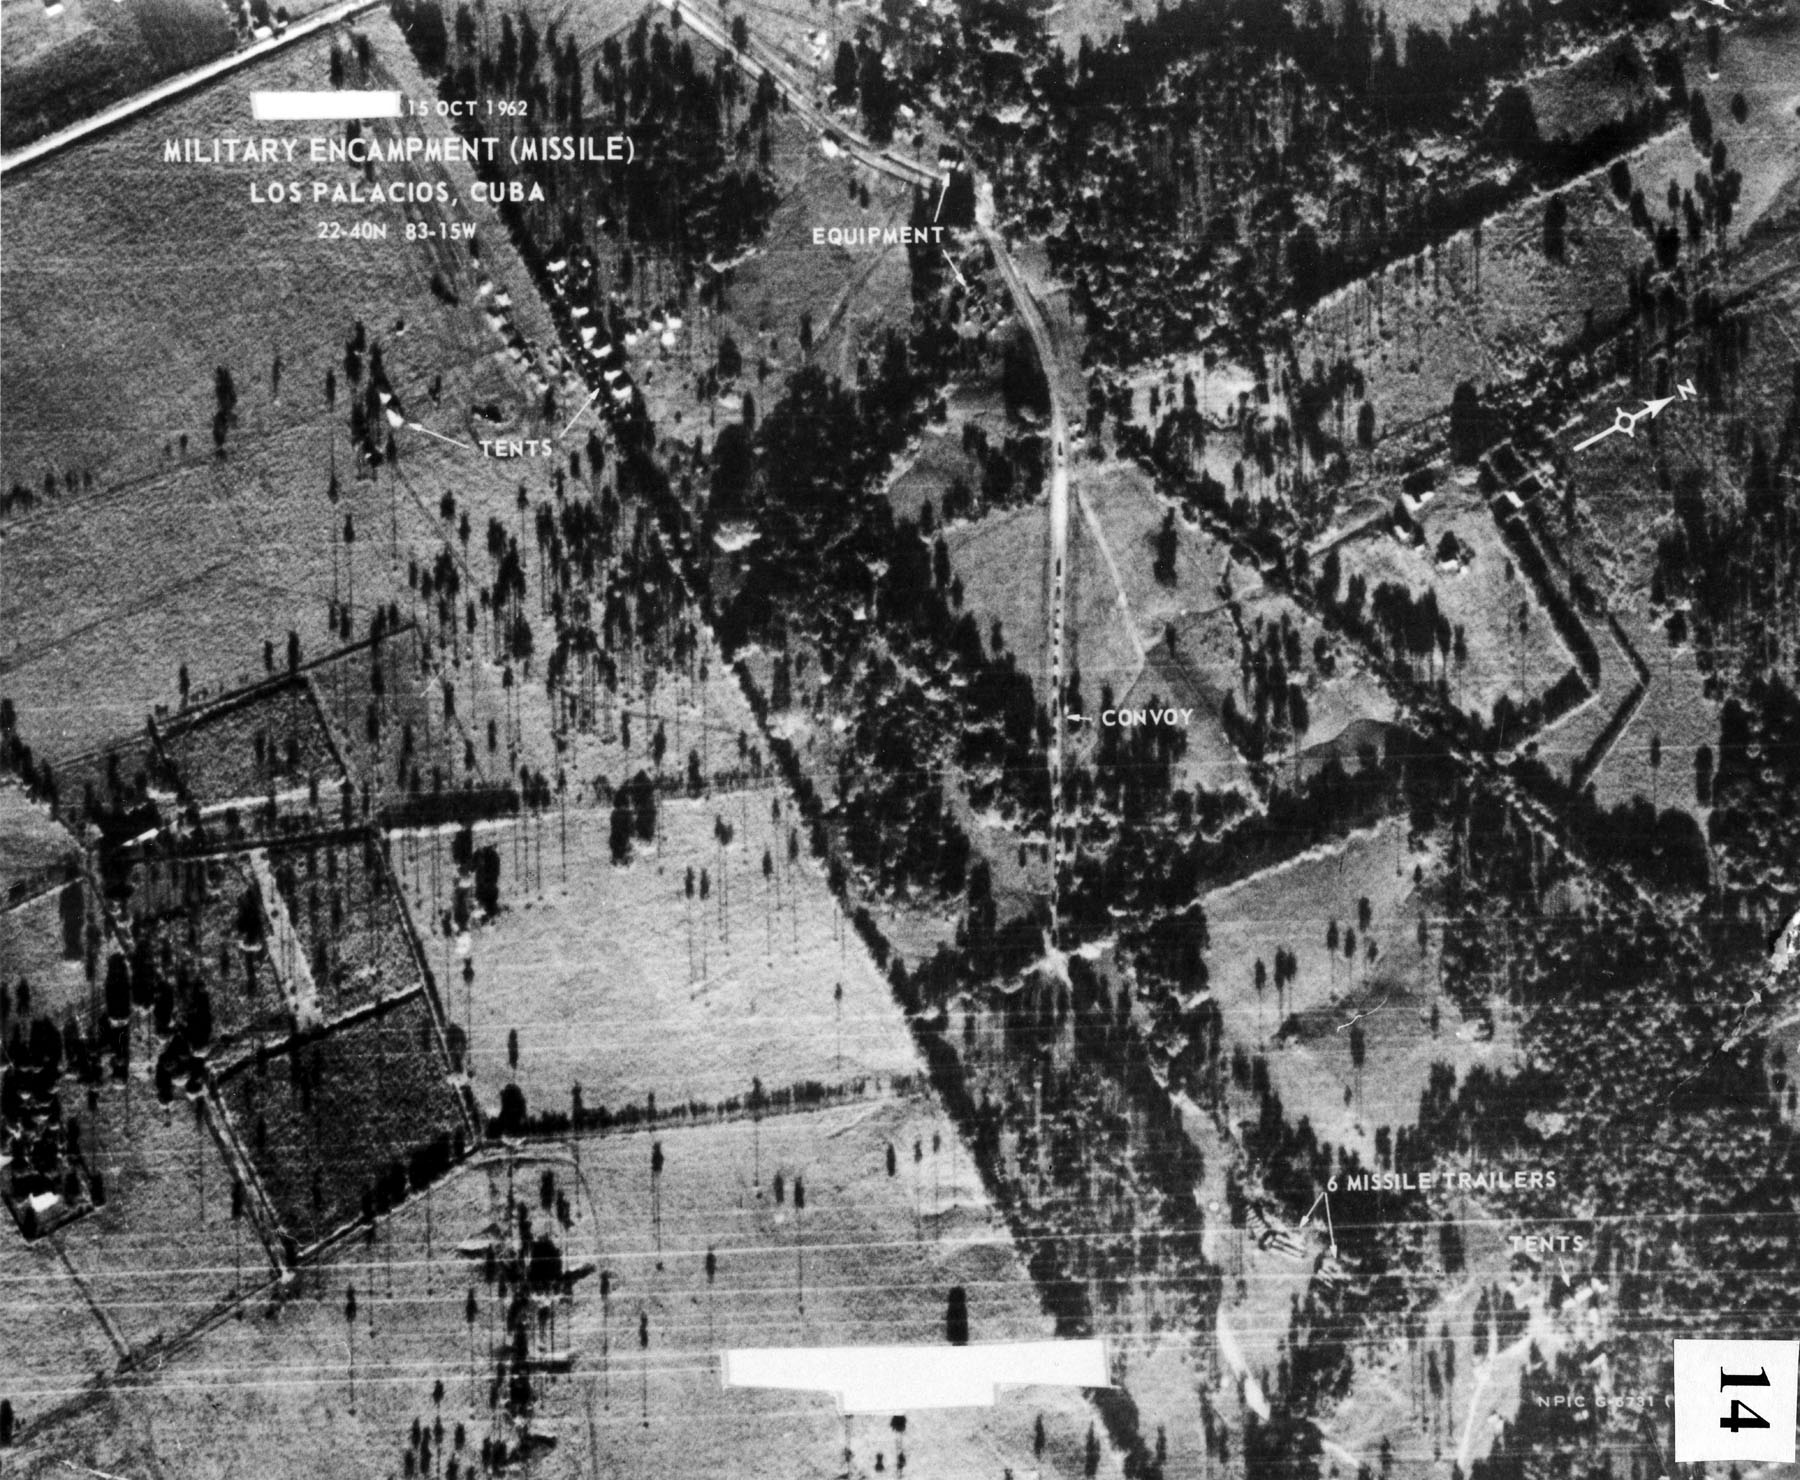 Soviet truck convoy deploying missiles near San Cristobal, Cuba, on Oct. 14, 1962. This image, taken by Maj. Steve Heyser in a USAF U-2, is the first picture that proved Russian missiles were being emplaced in Cuba. The image is dated on the day it was printed. (U.S. Air Force photo)